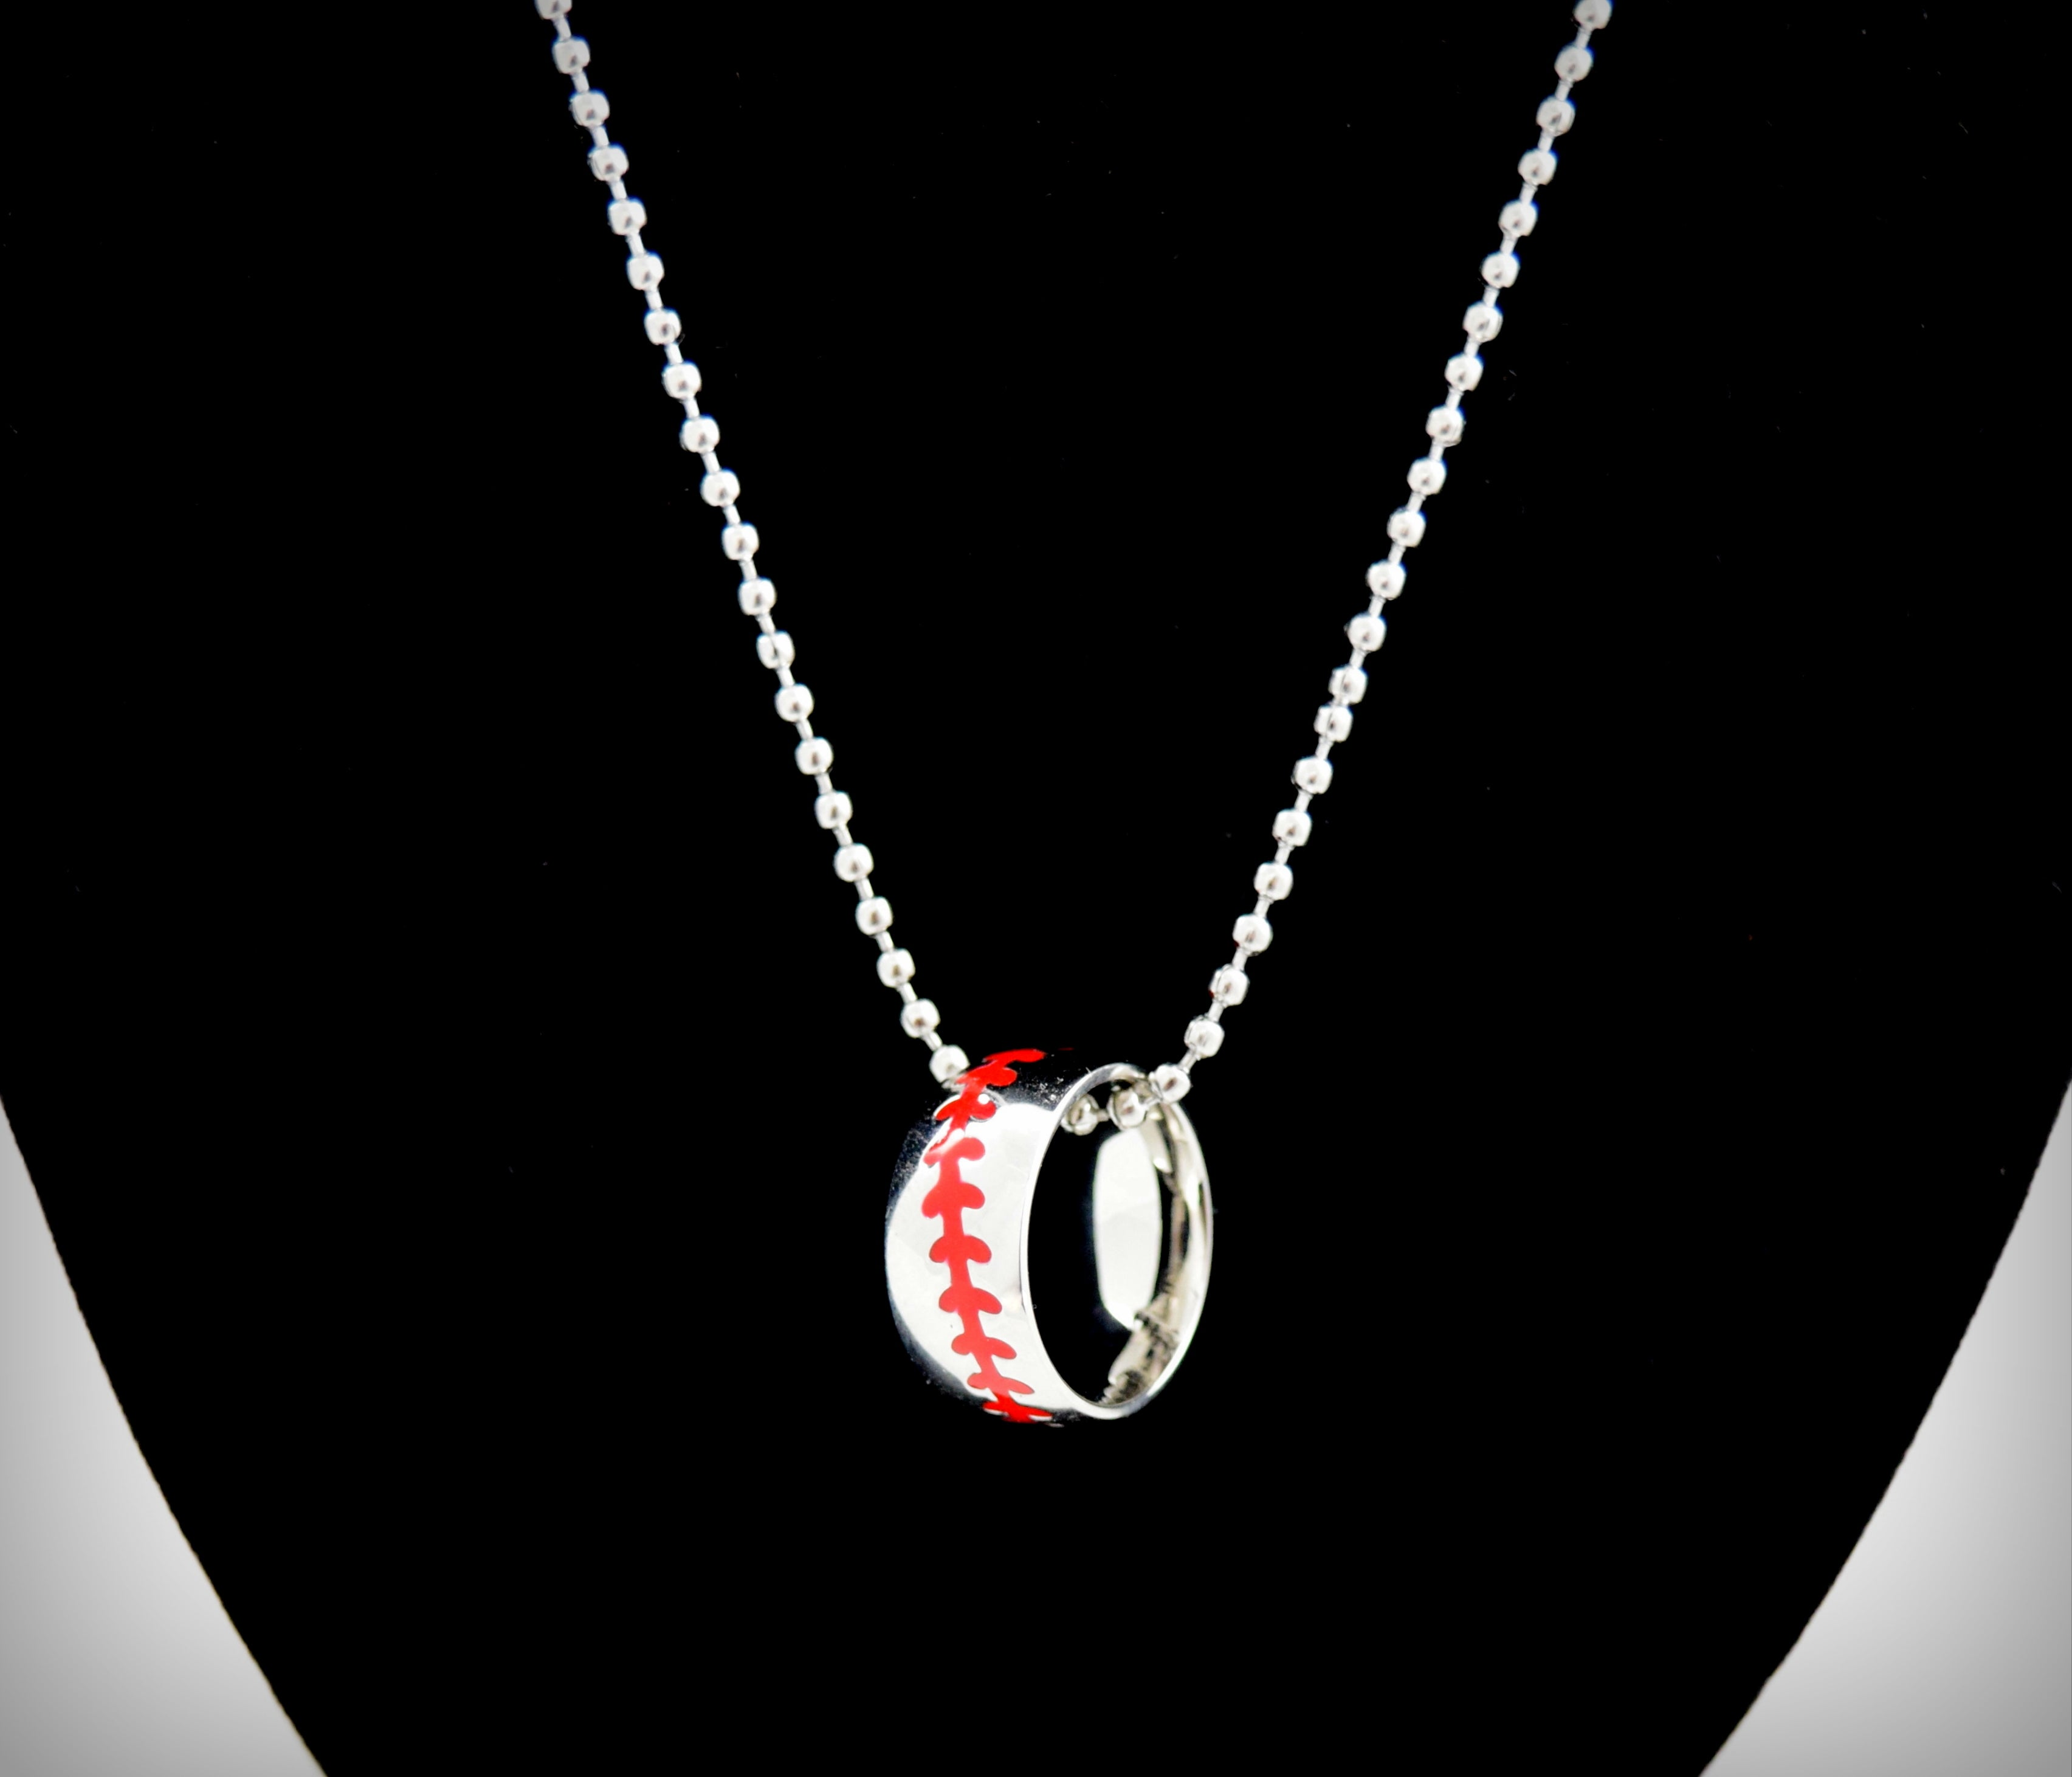 Baseball Player Ball Chain Necklace